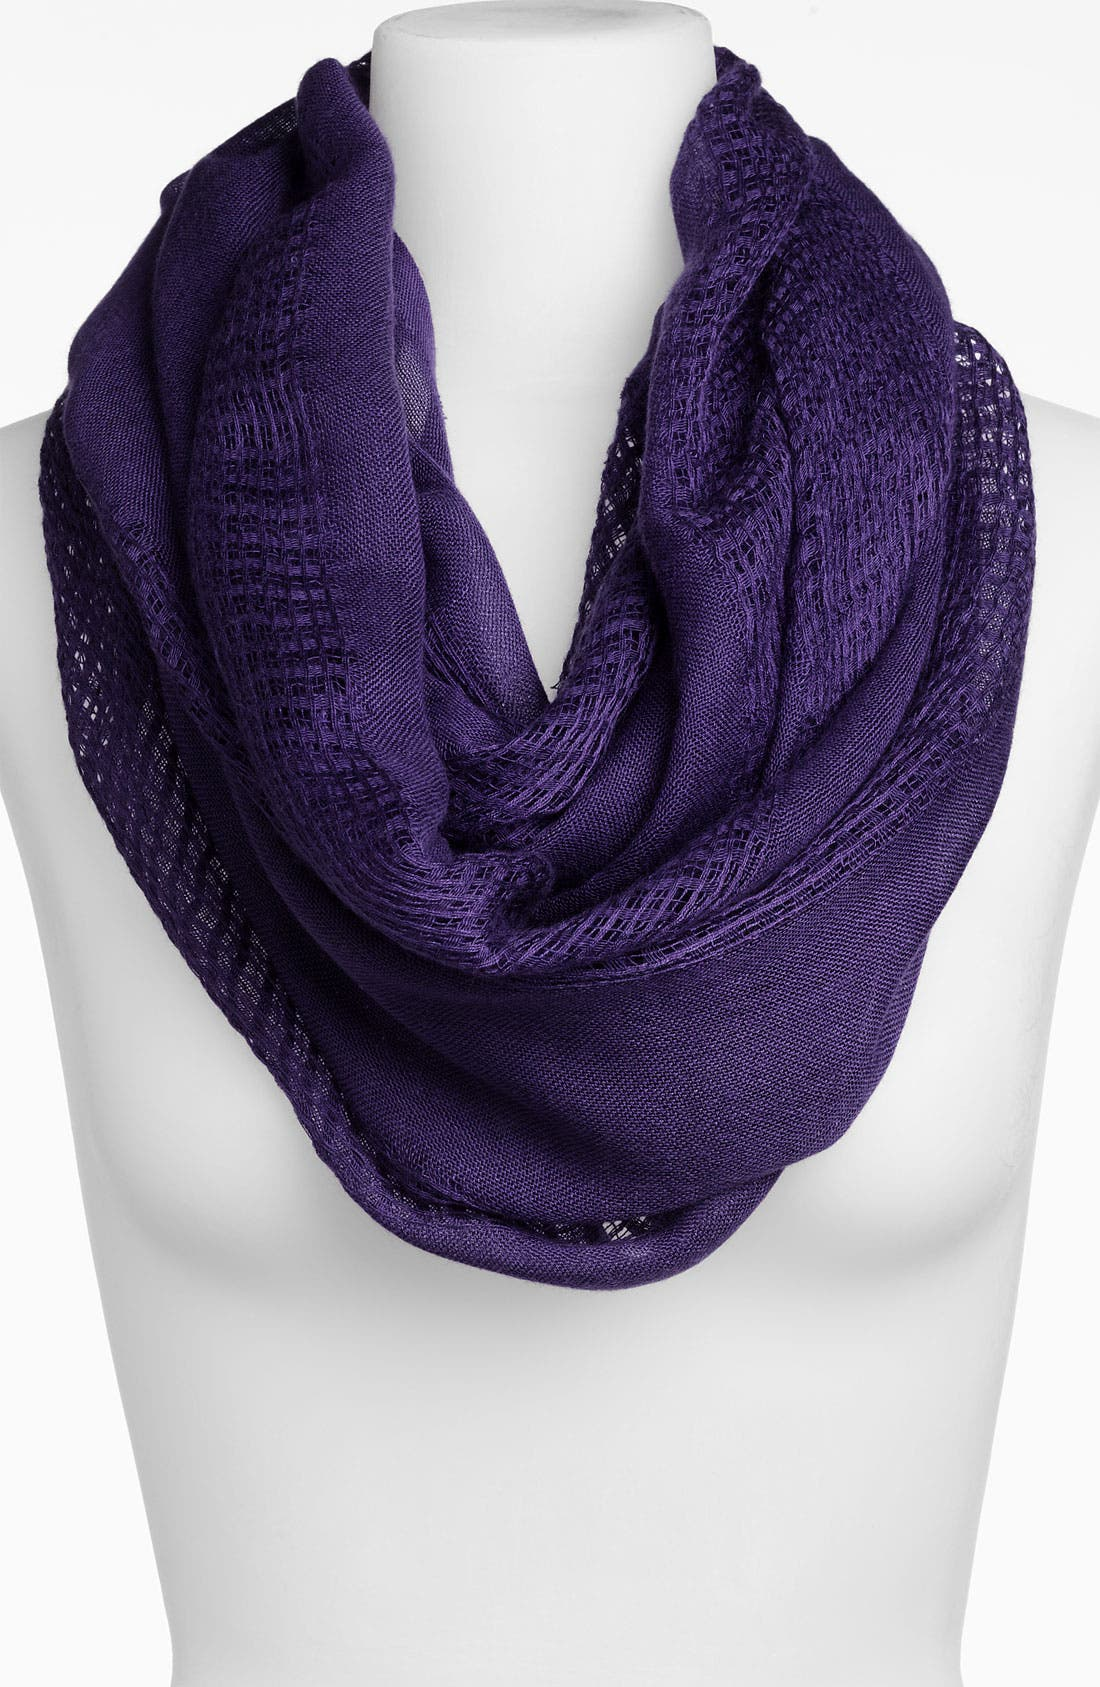 Main Image - BP. Woven Infinity Scarf